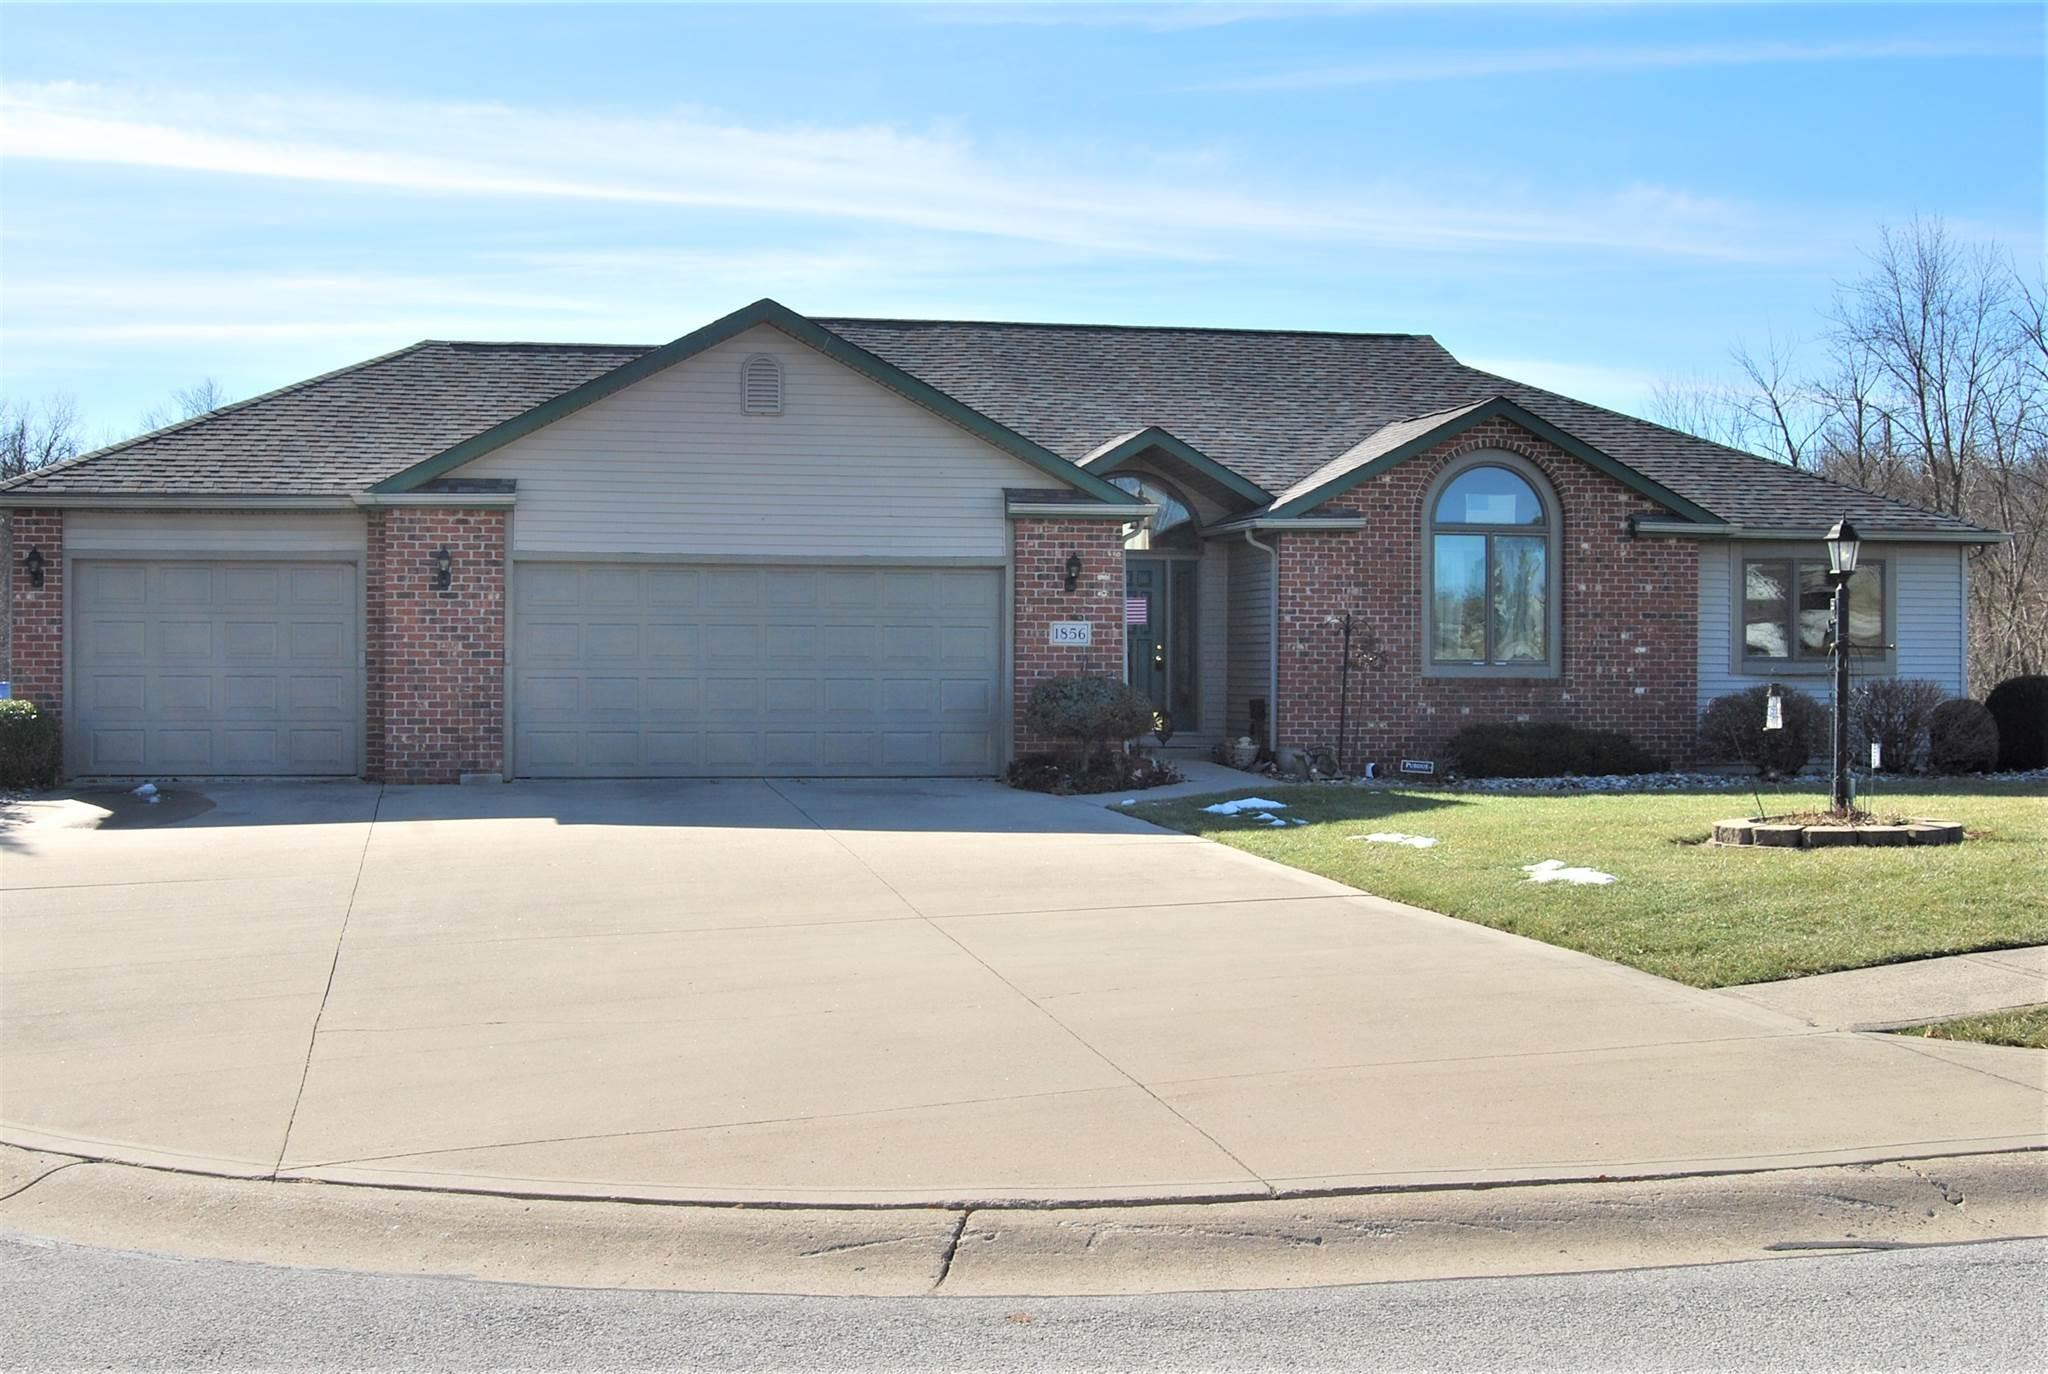 Gorgeous ranch style home featuring 3 bedrooms,3.5 baths on a full finished walkout basement on a Cul de Sac! Amazing southern view on the golf course on half an acre.  As soon as you enter the front door you will appreciate a grand living room with a cathedral ceiling and gas log fireplace. The efficient kitchen features a heated ceramic tile floor and Cambria Canterbury counter tops. Off the dining area is a warm sun room for your morning coffee, or if it's really warm, go out onto the deck. The master bedroom has plenty of space for that King sized bed and has an incredible en suite bathroom with jetted garden tub and shower. The walkout basement affords a game room, home theater area, a bathroom, storage and/or whatever your imagination can create(man cave!). Heating, cooling, water heater,water softener, roof and most of the appliances are recently updated.The spacious three car garage is ready for toys!